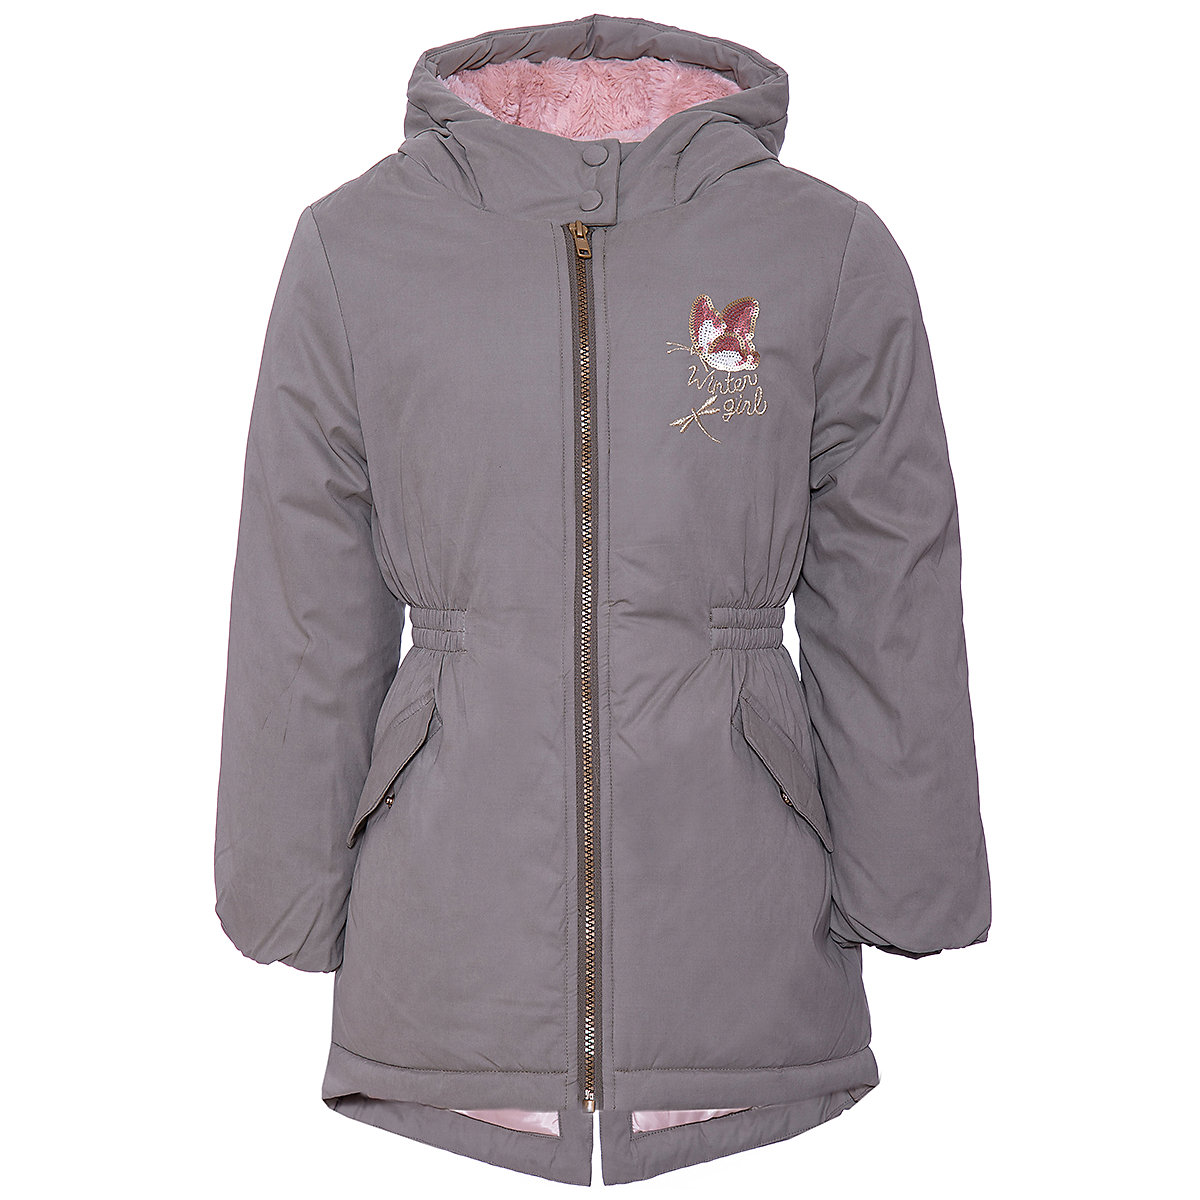 Original Marines Jackets & Coats 9500798 Polyester Girls girl children clothing reima jackets 8665394 for girls polyester winter fur clothes girl